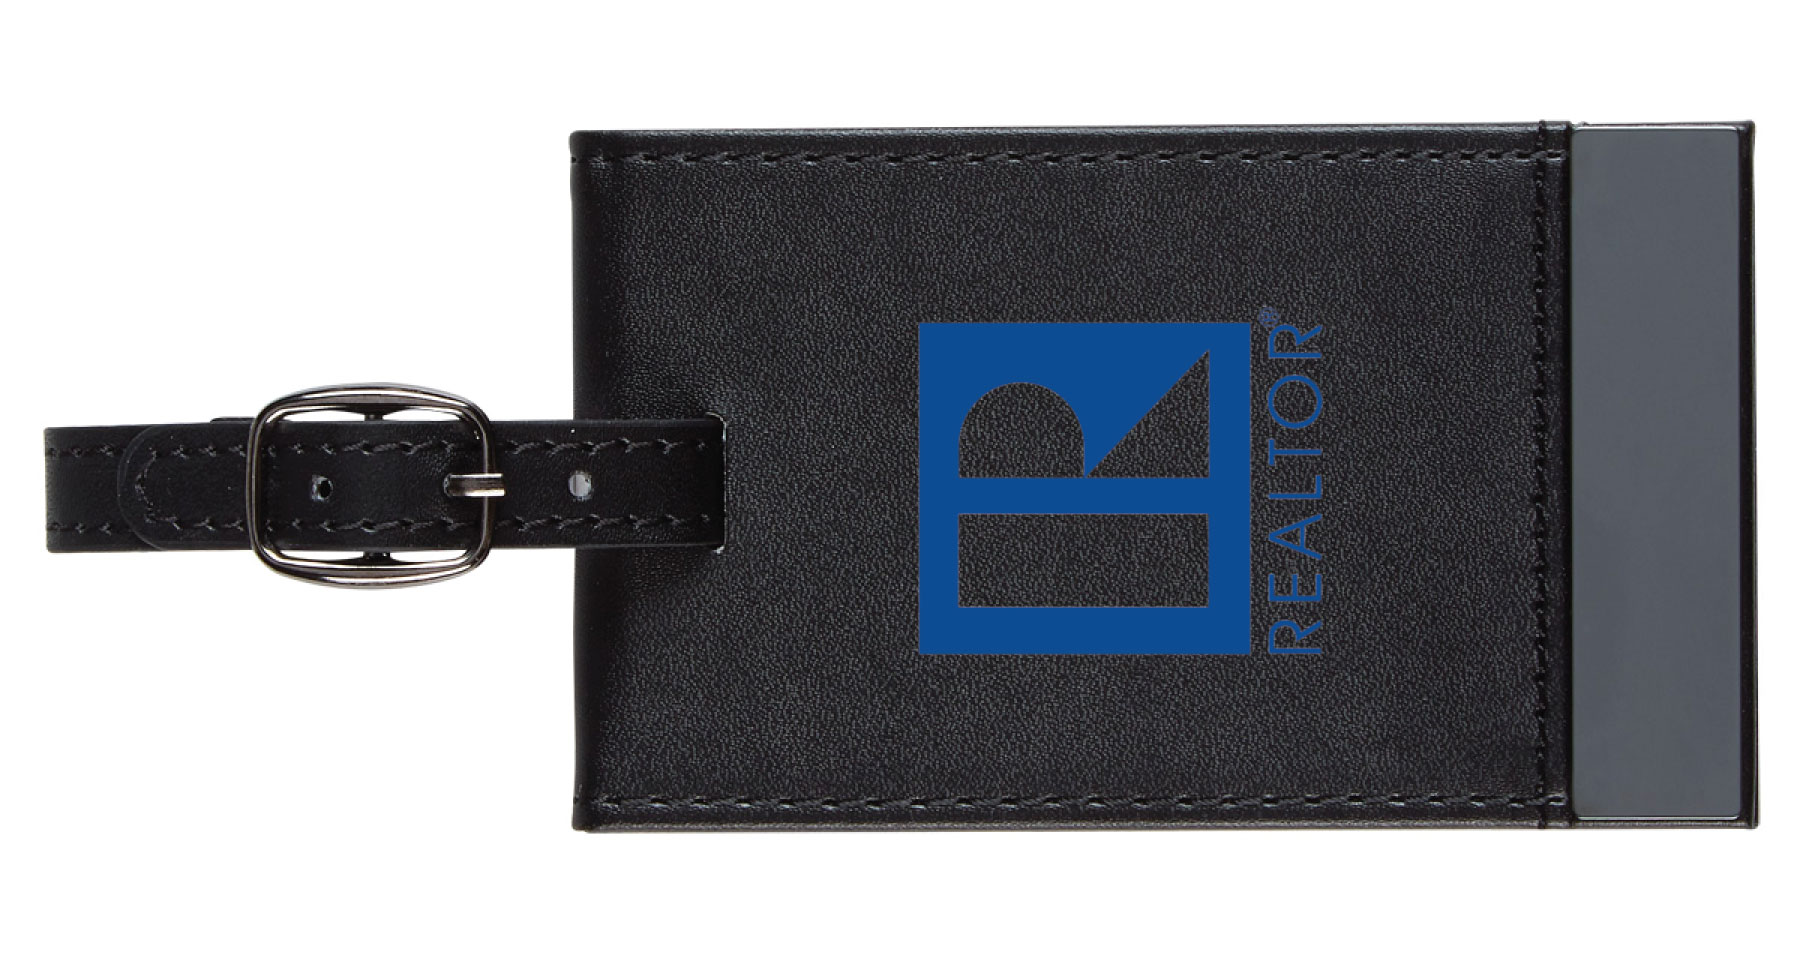 Executive Luggage Tag Tags,Luggage,Hang,Travel,Bags,Address,Pack,Trips